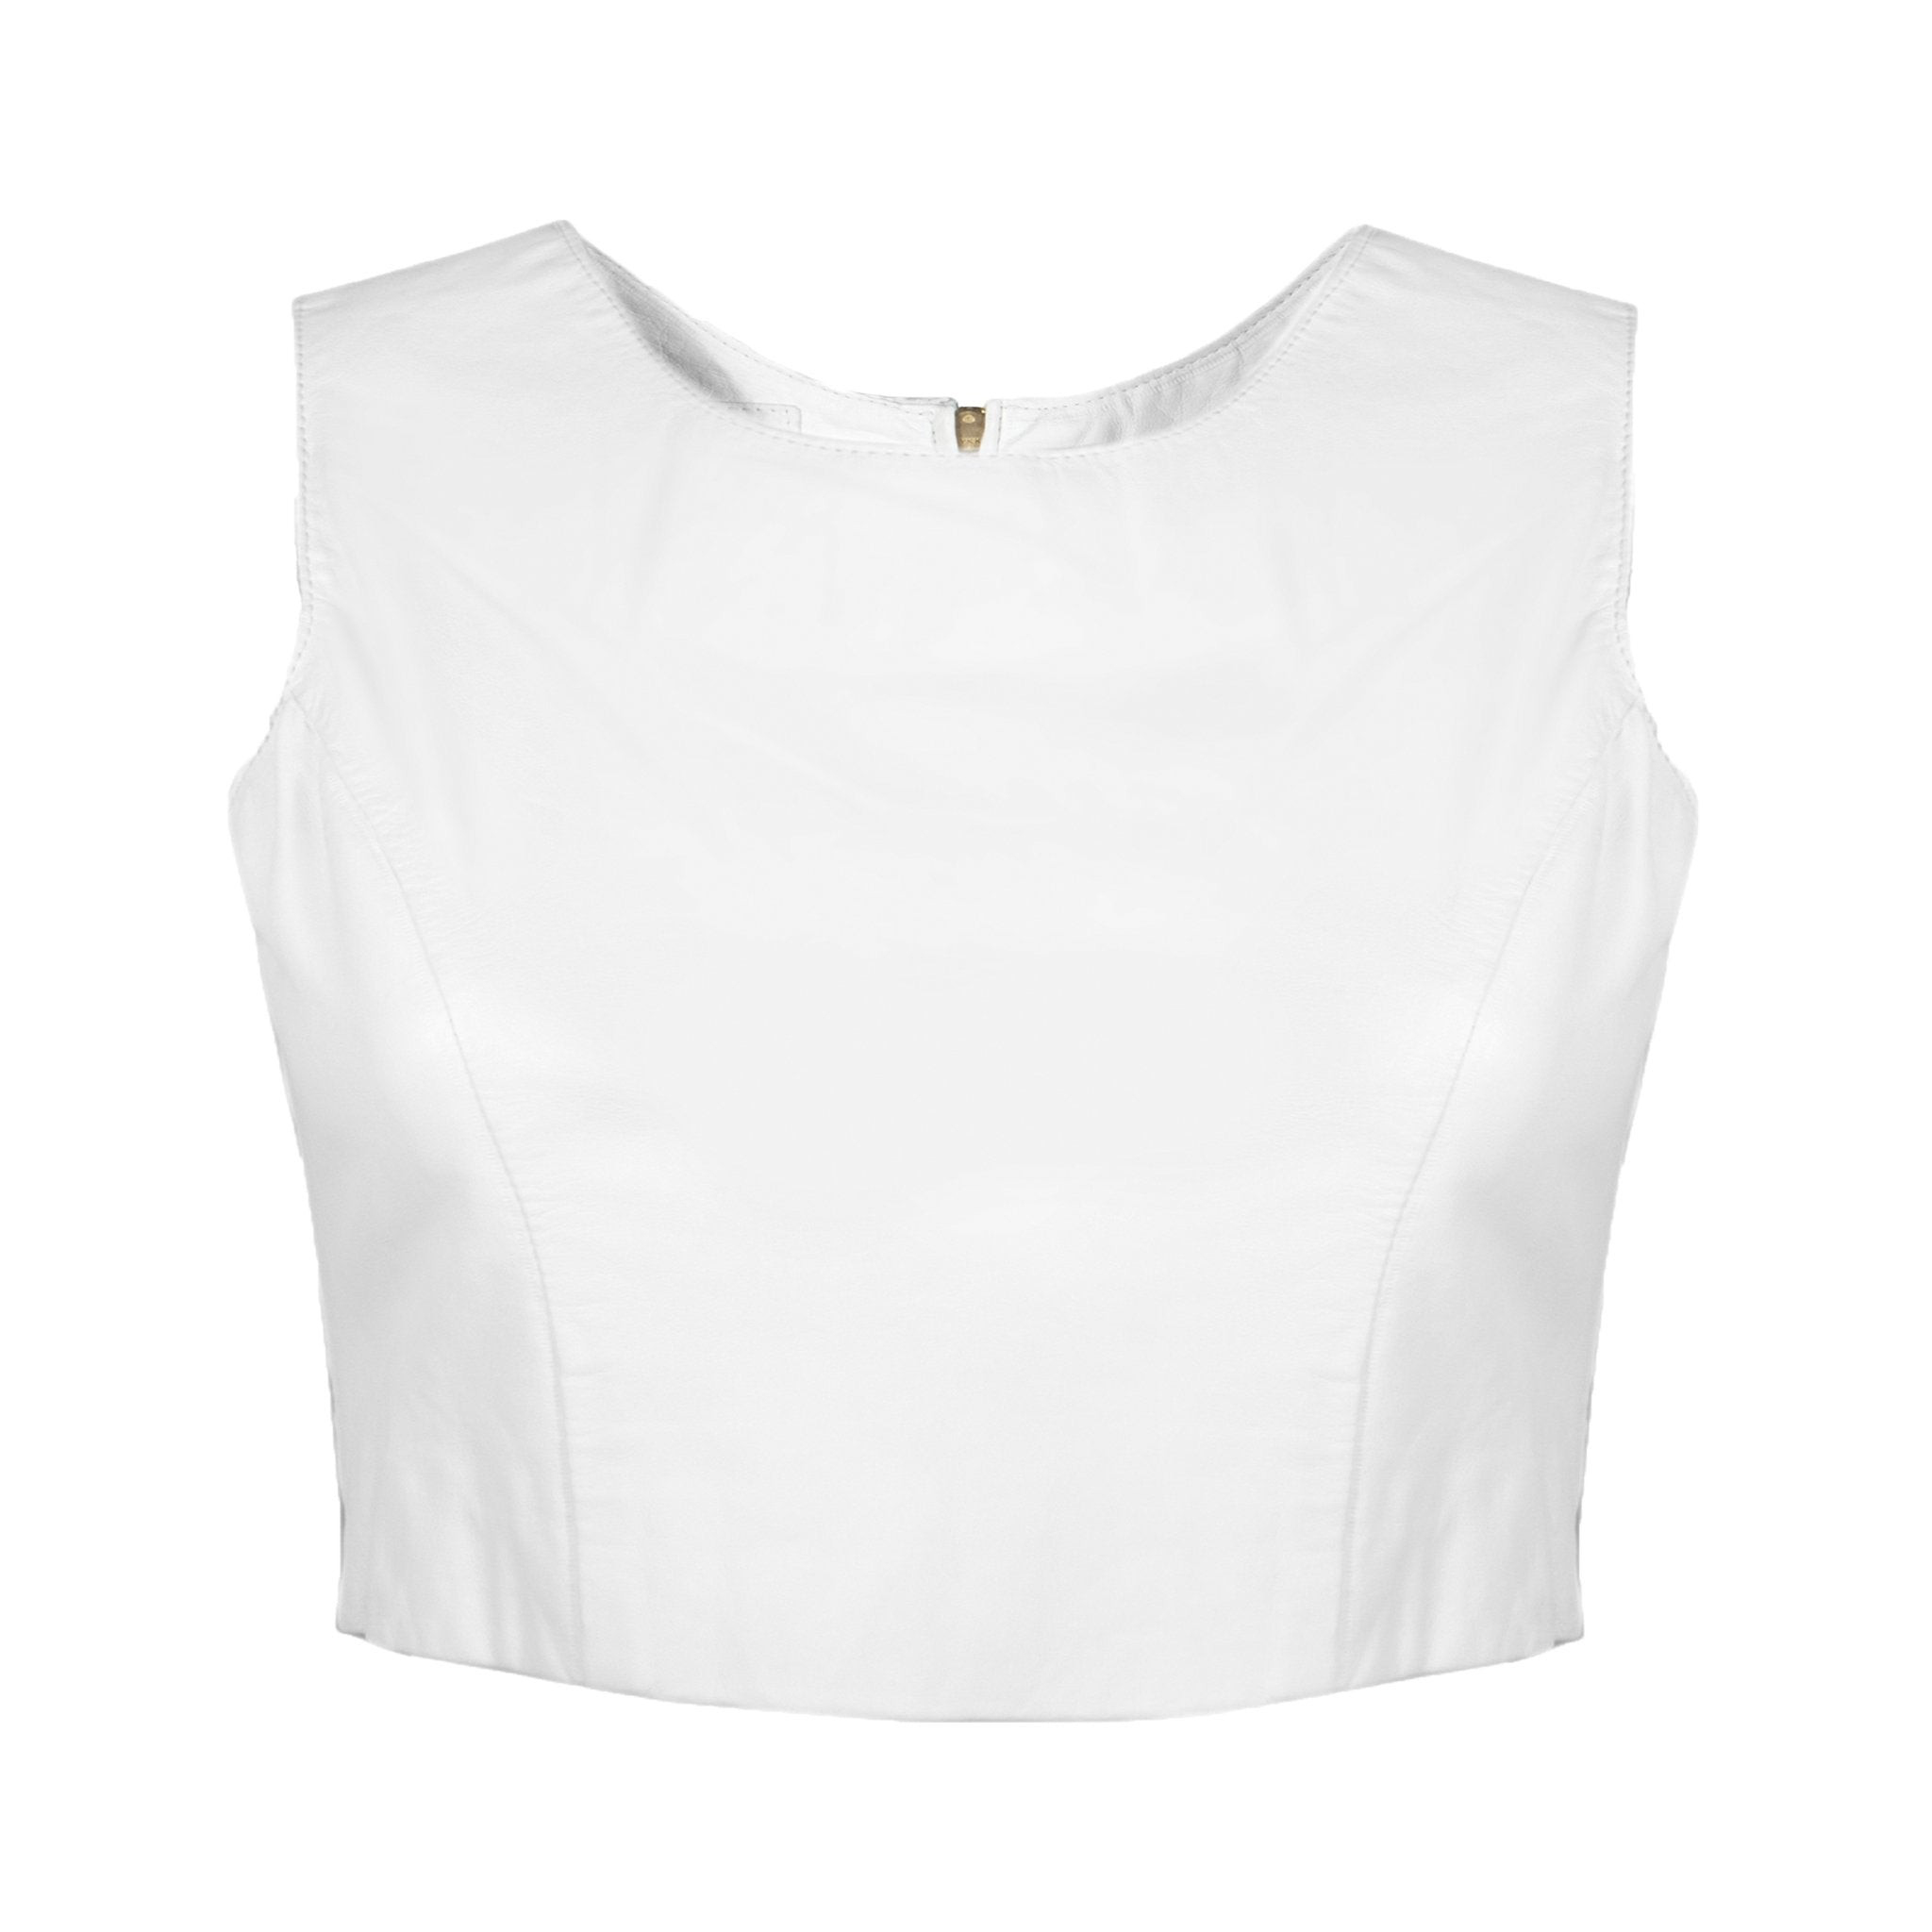 Lambskin Crop Top (available in more colors) - Blumera